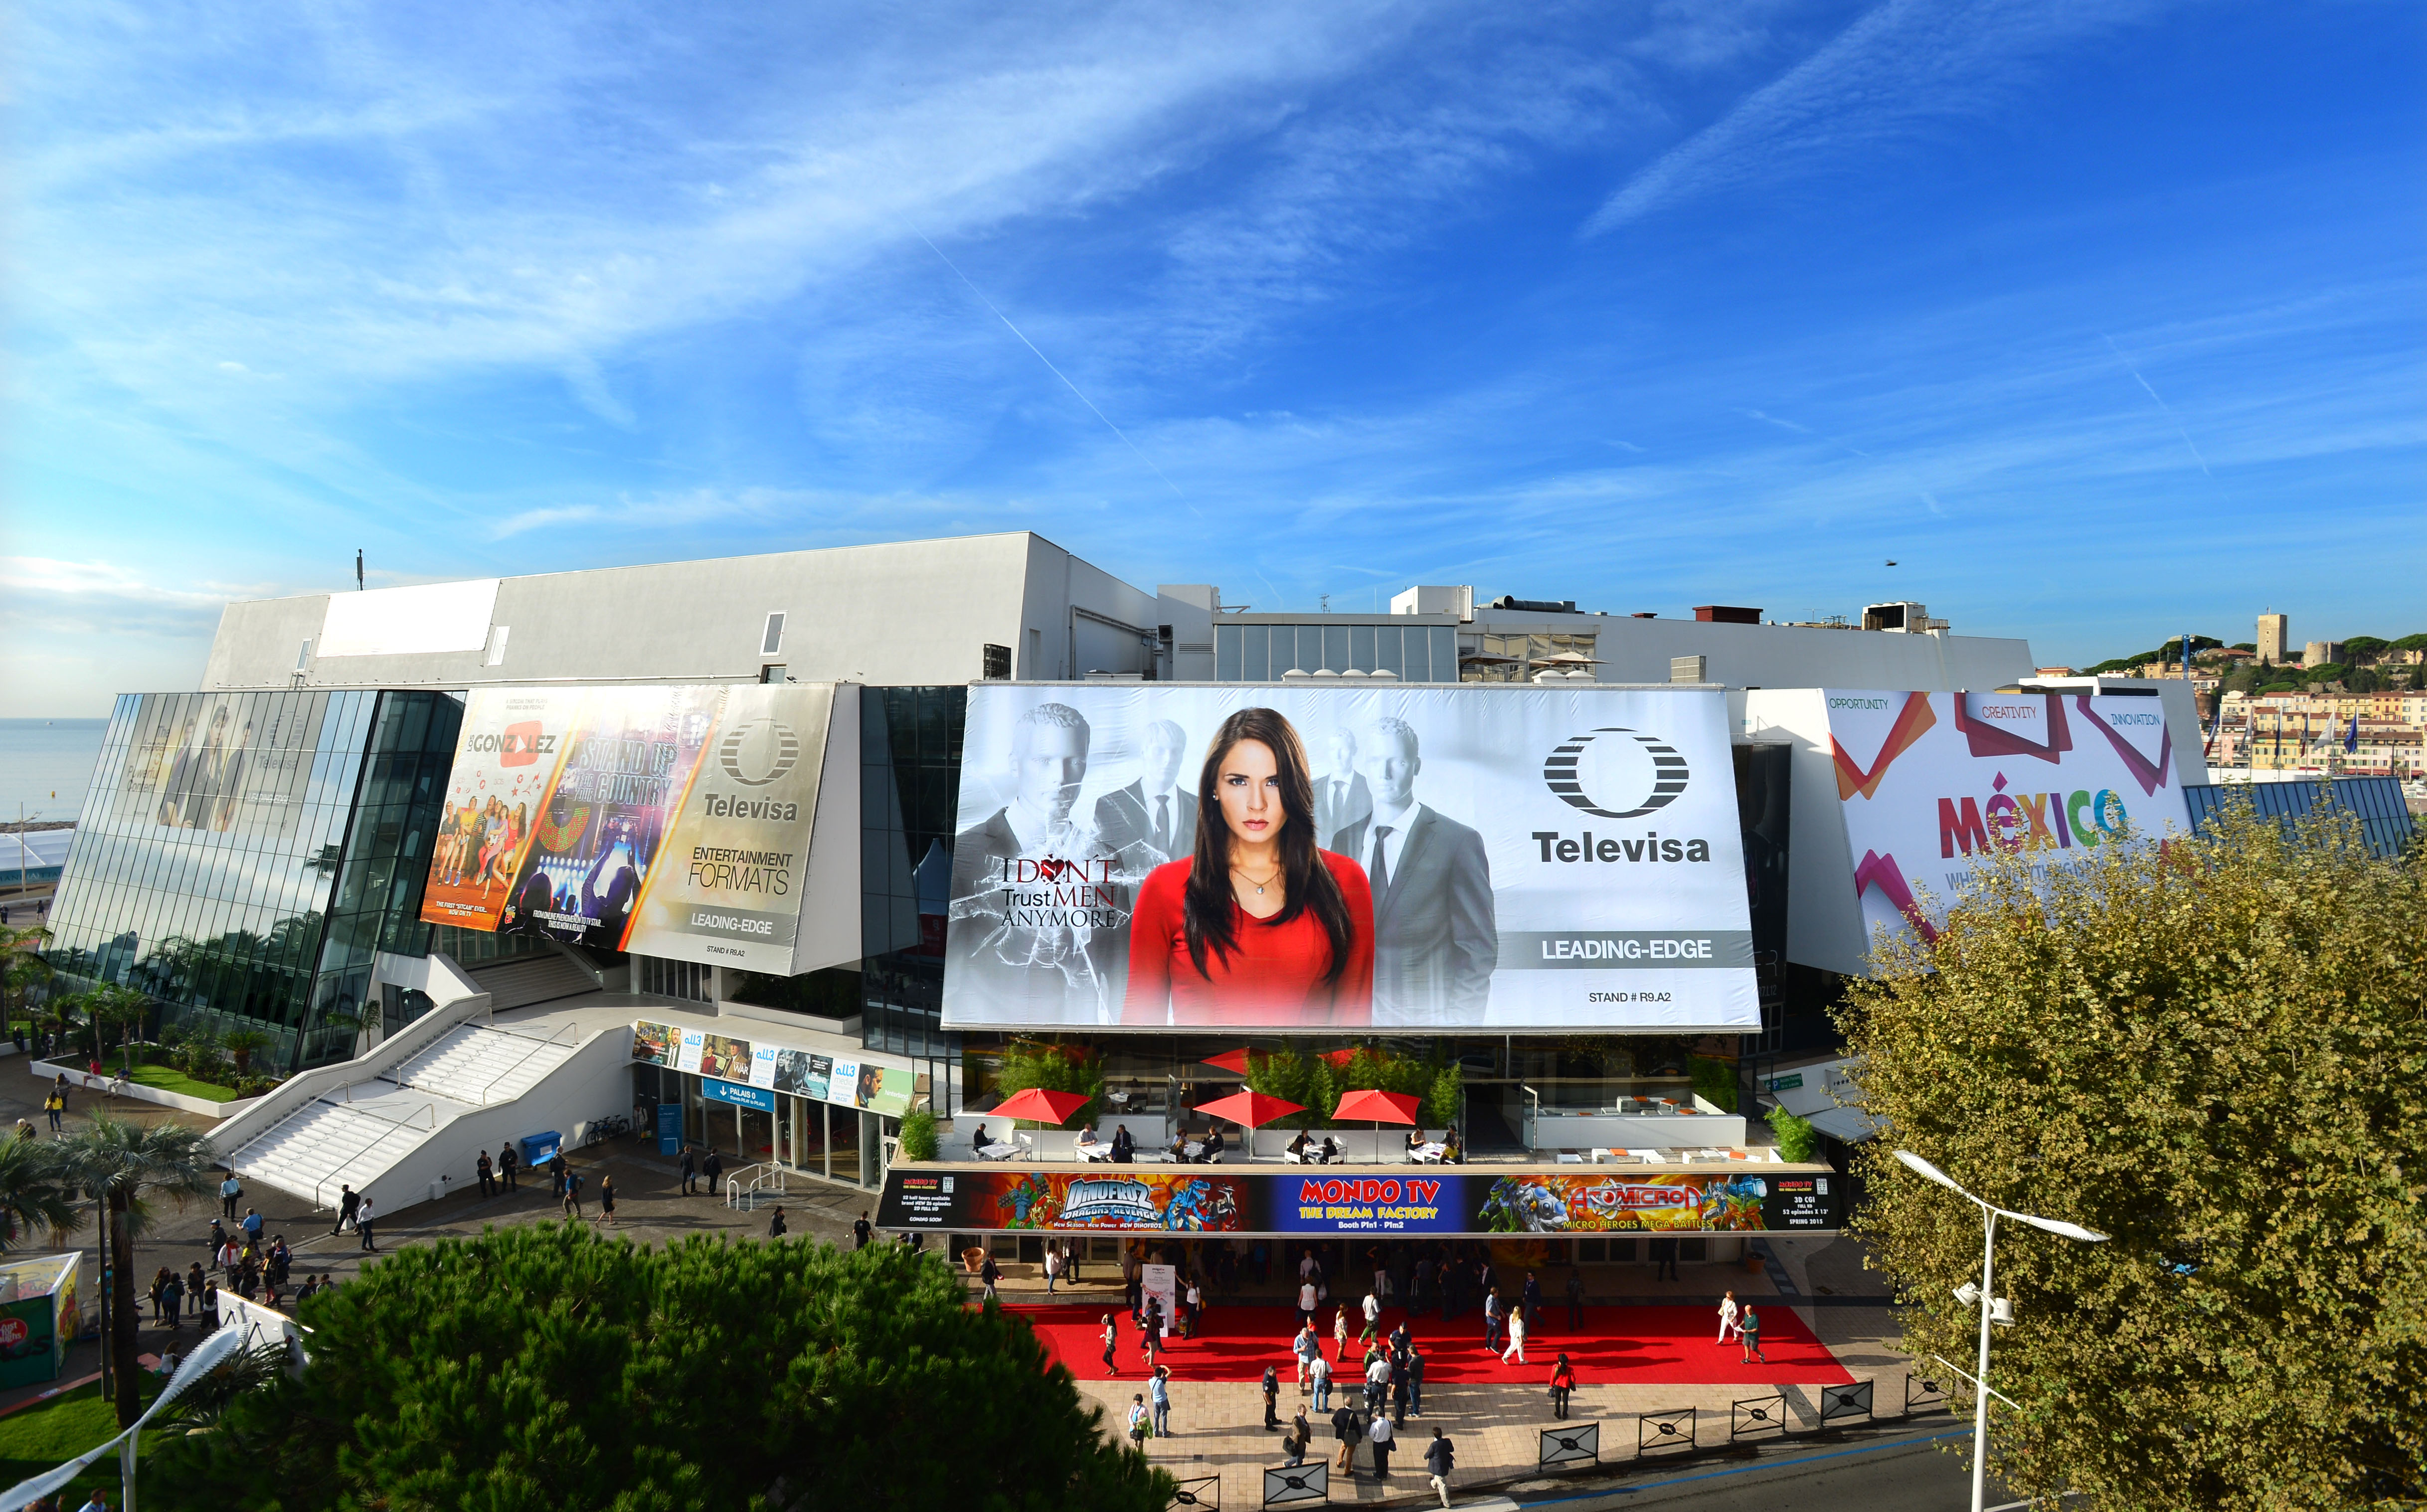 MIPCOM 2014 - ATMOSPHERE - OUTSIDE - PALAIS DES FESTIVALS